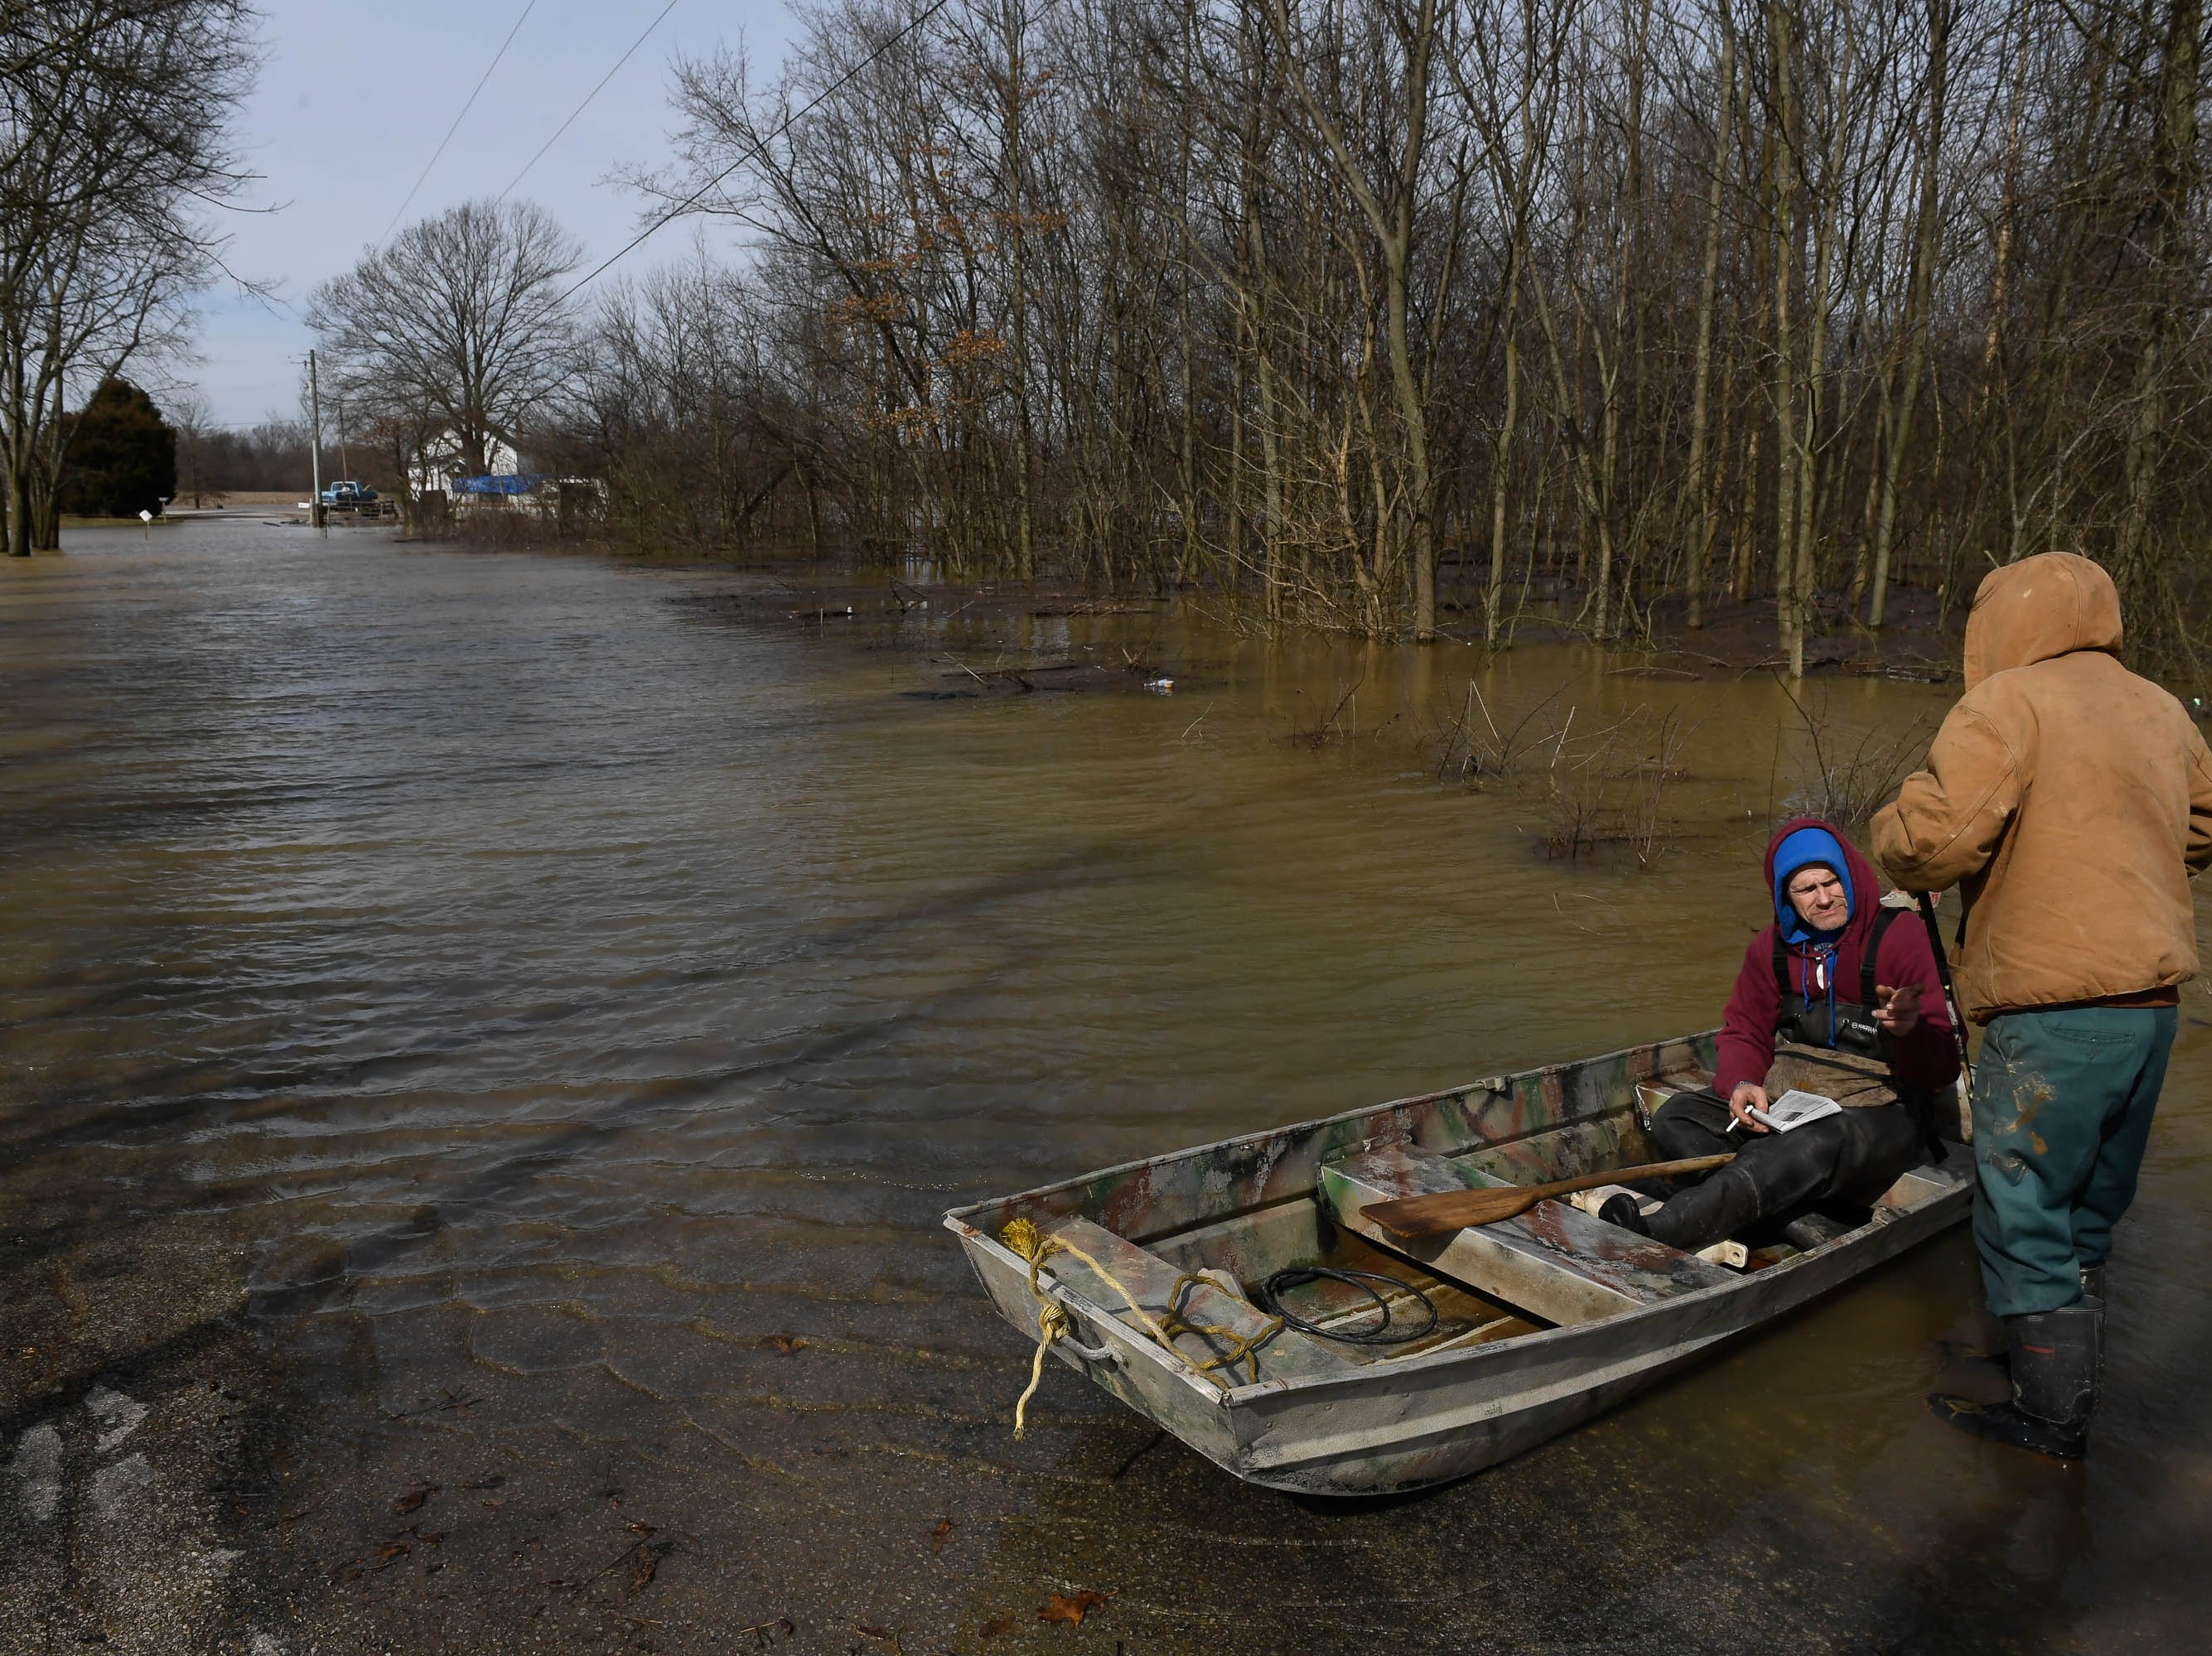 Beals resident uses a boat to travel to and from his home on West Pike Landing Road in eastern Henderson County Wednesday, February 13, 2019.